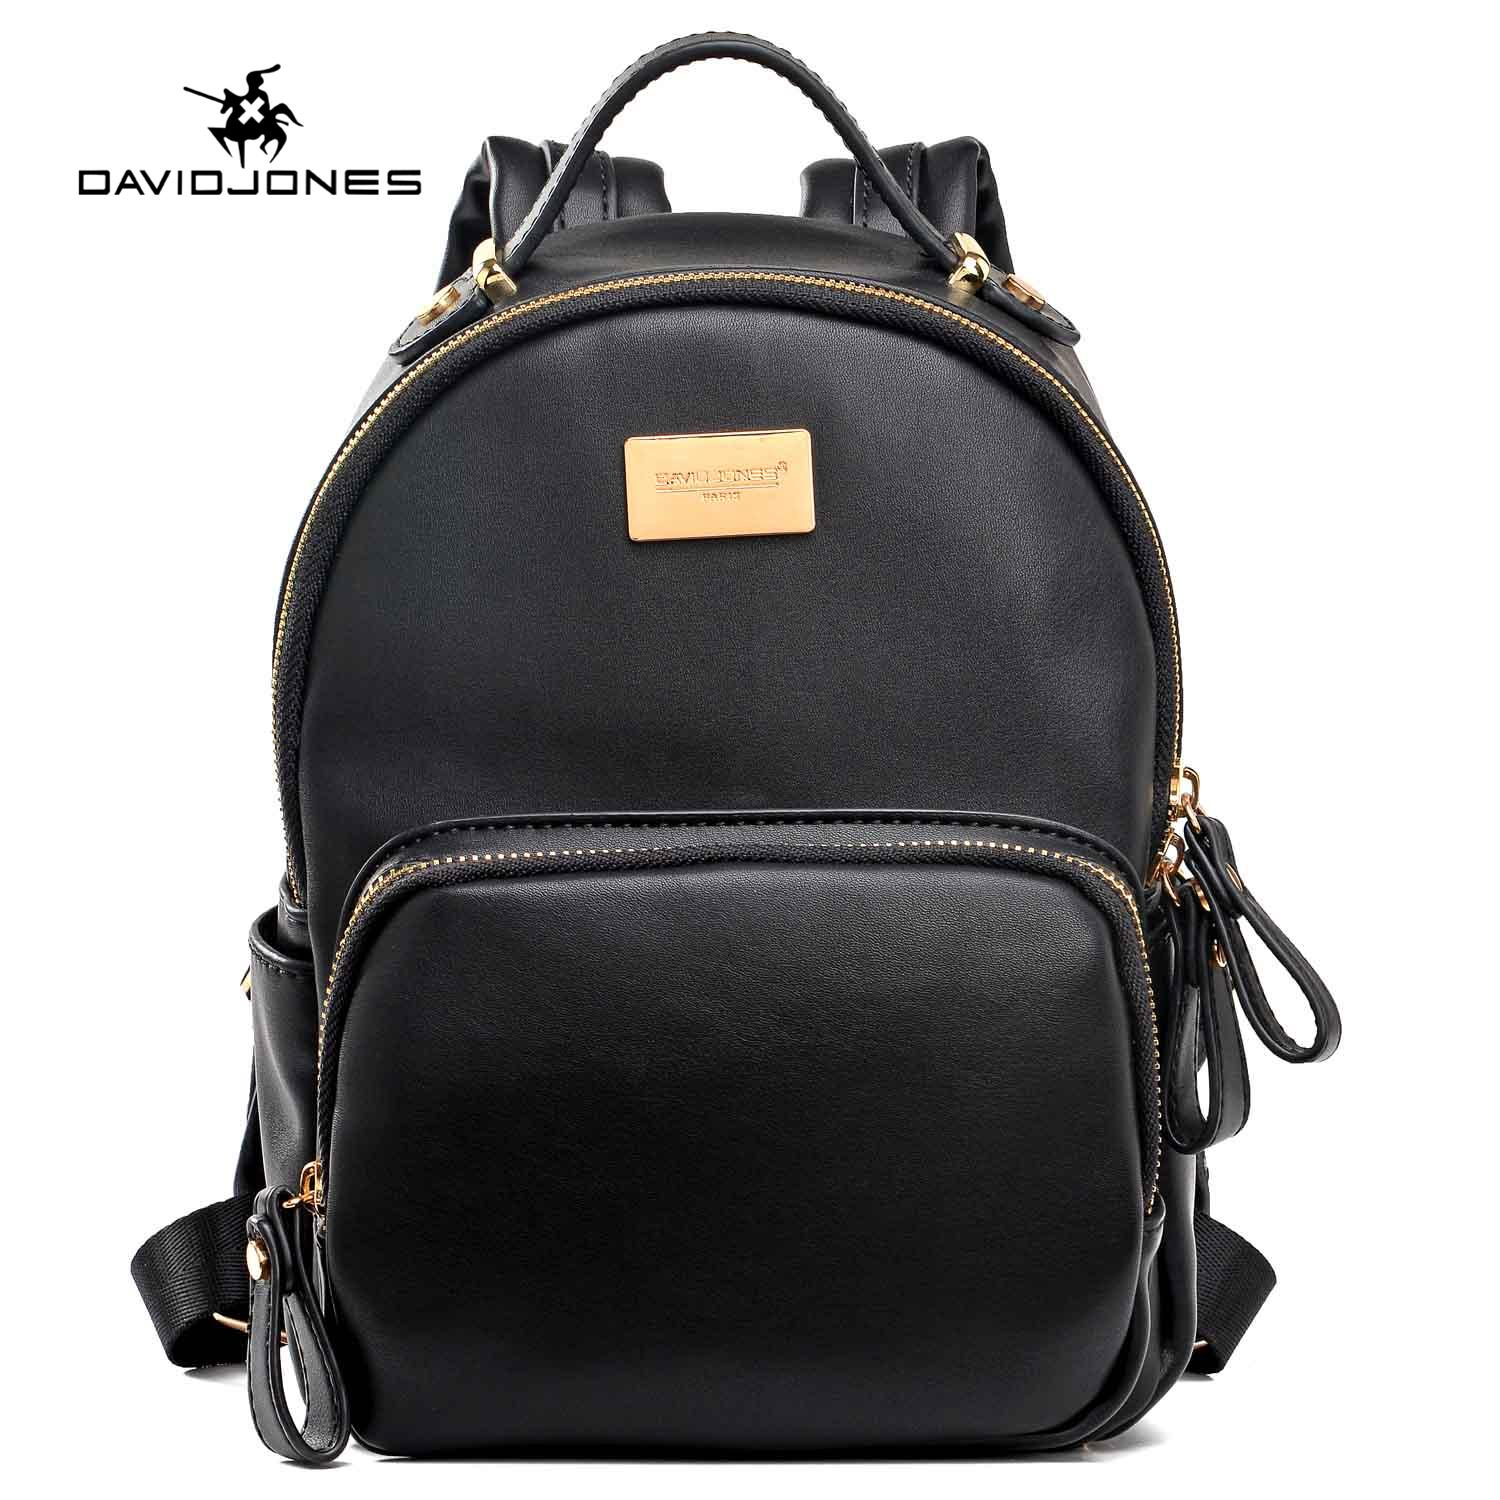 Davidjones Genuine Leather Small Mini Backpack Sale